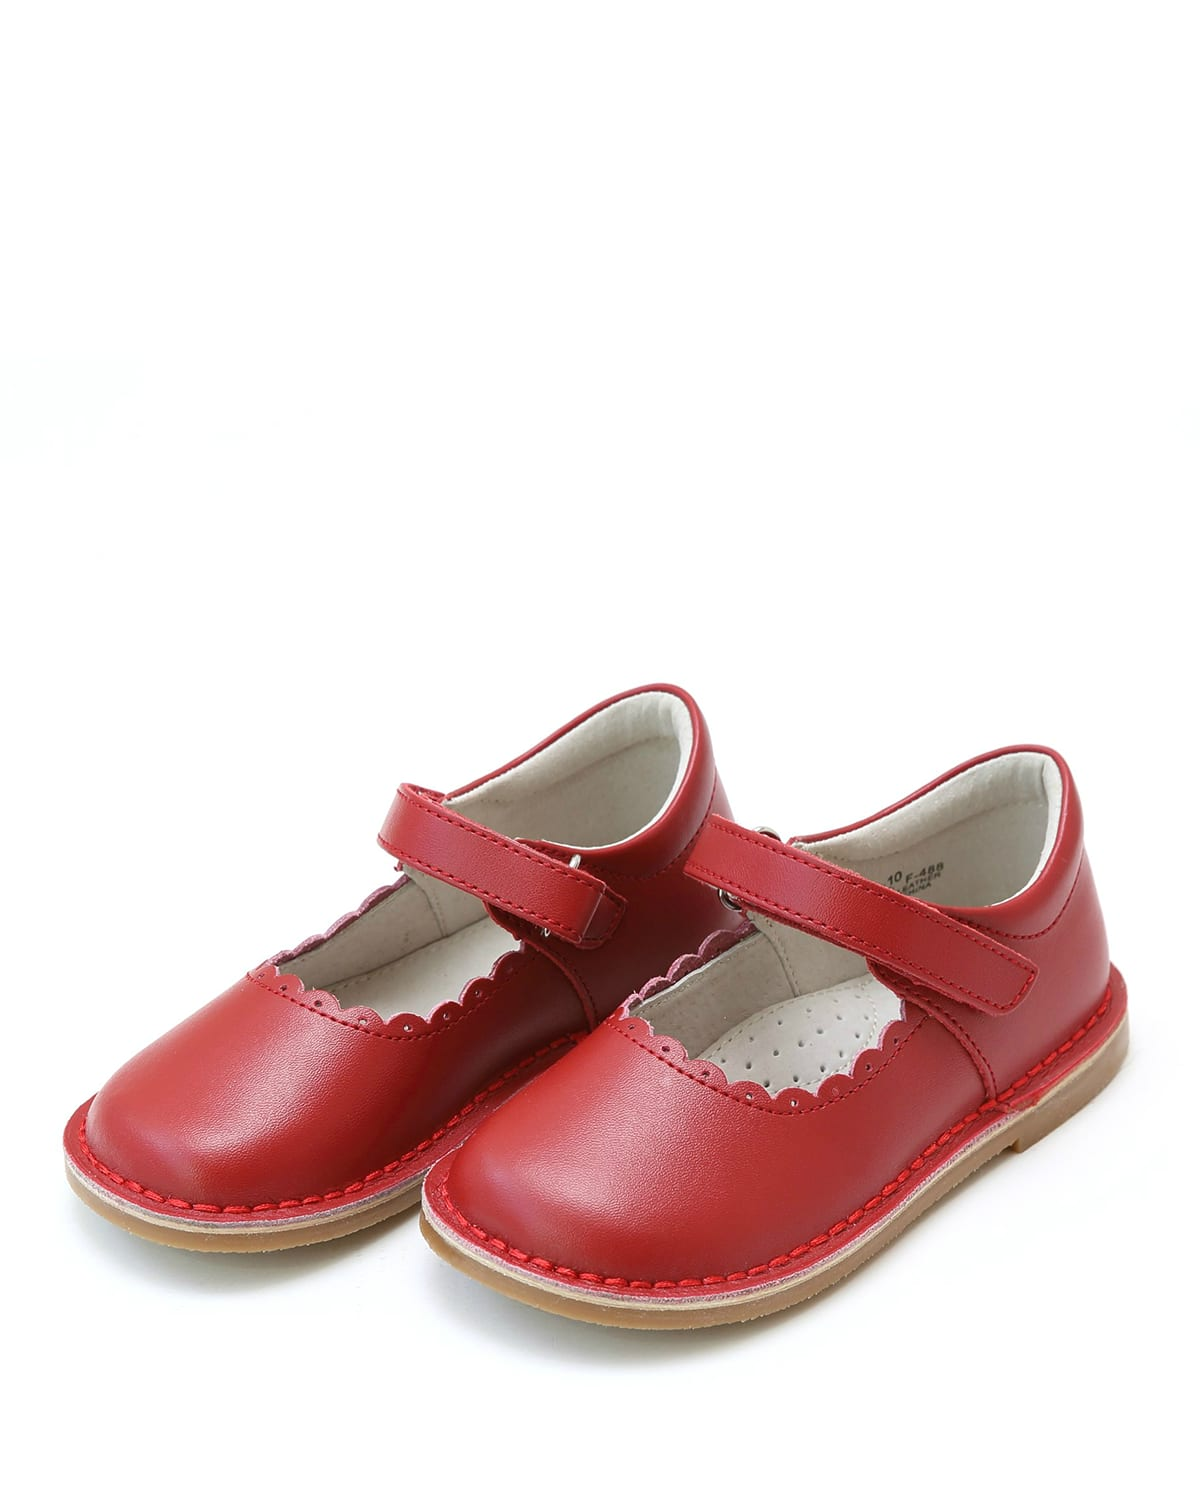 Girl's Caitlin Scalloped Grip-Strap Mary Jane Shoes